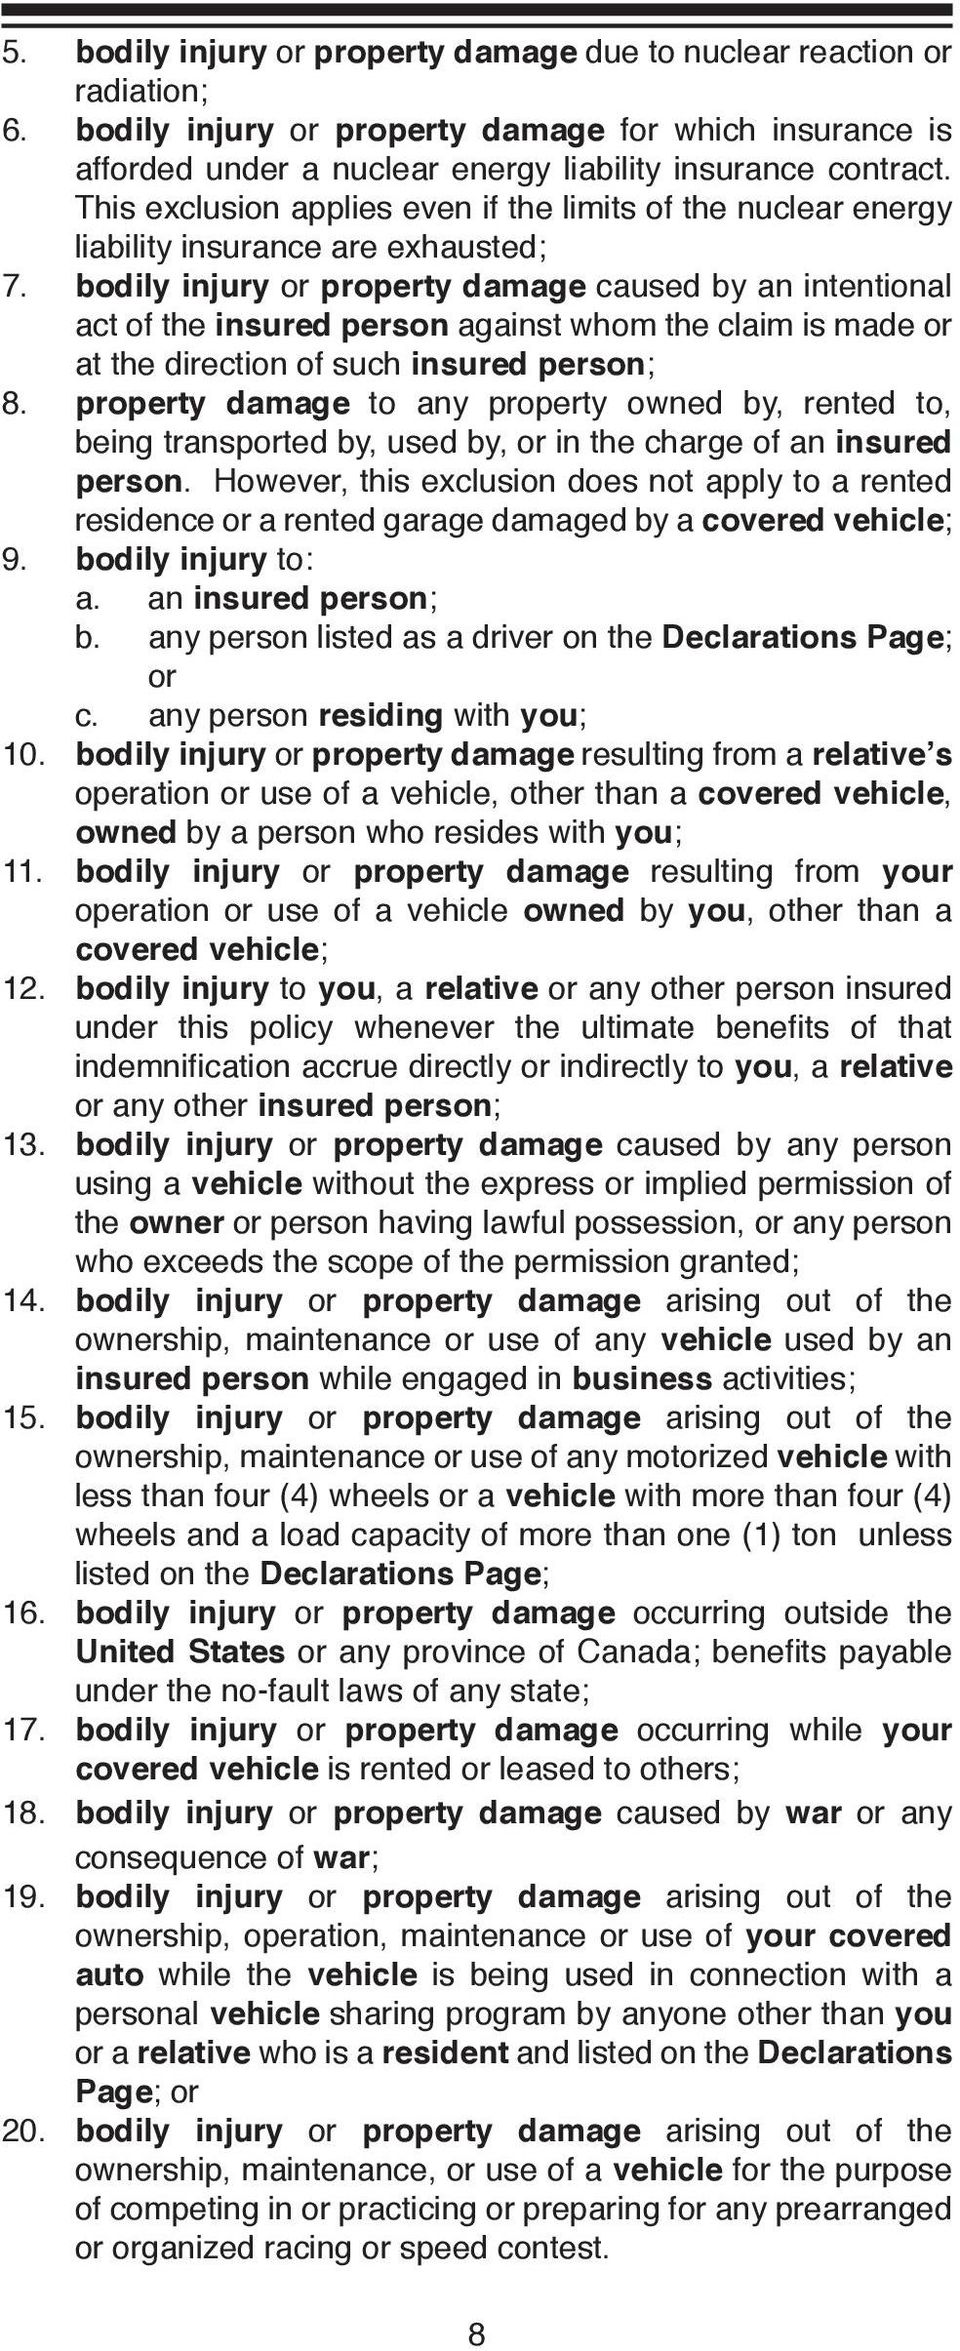 bodily injury or property damage caused by an intentional act of the insured person against whom the claim is made or at the direction of such insured person; 8.